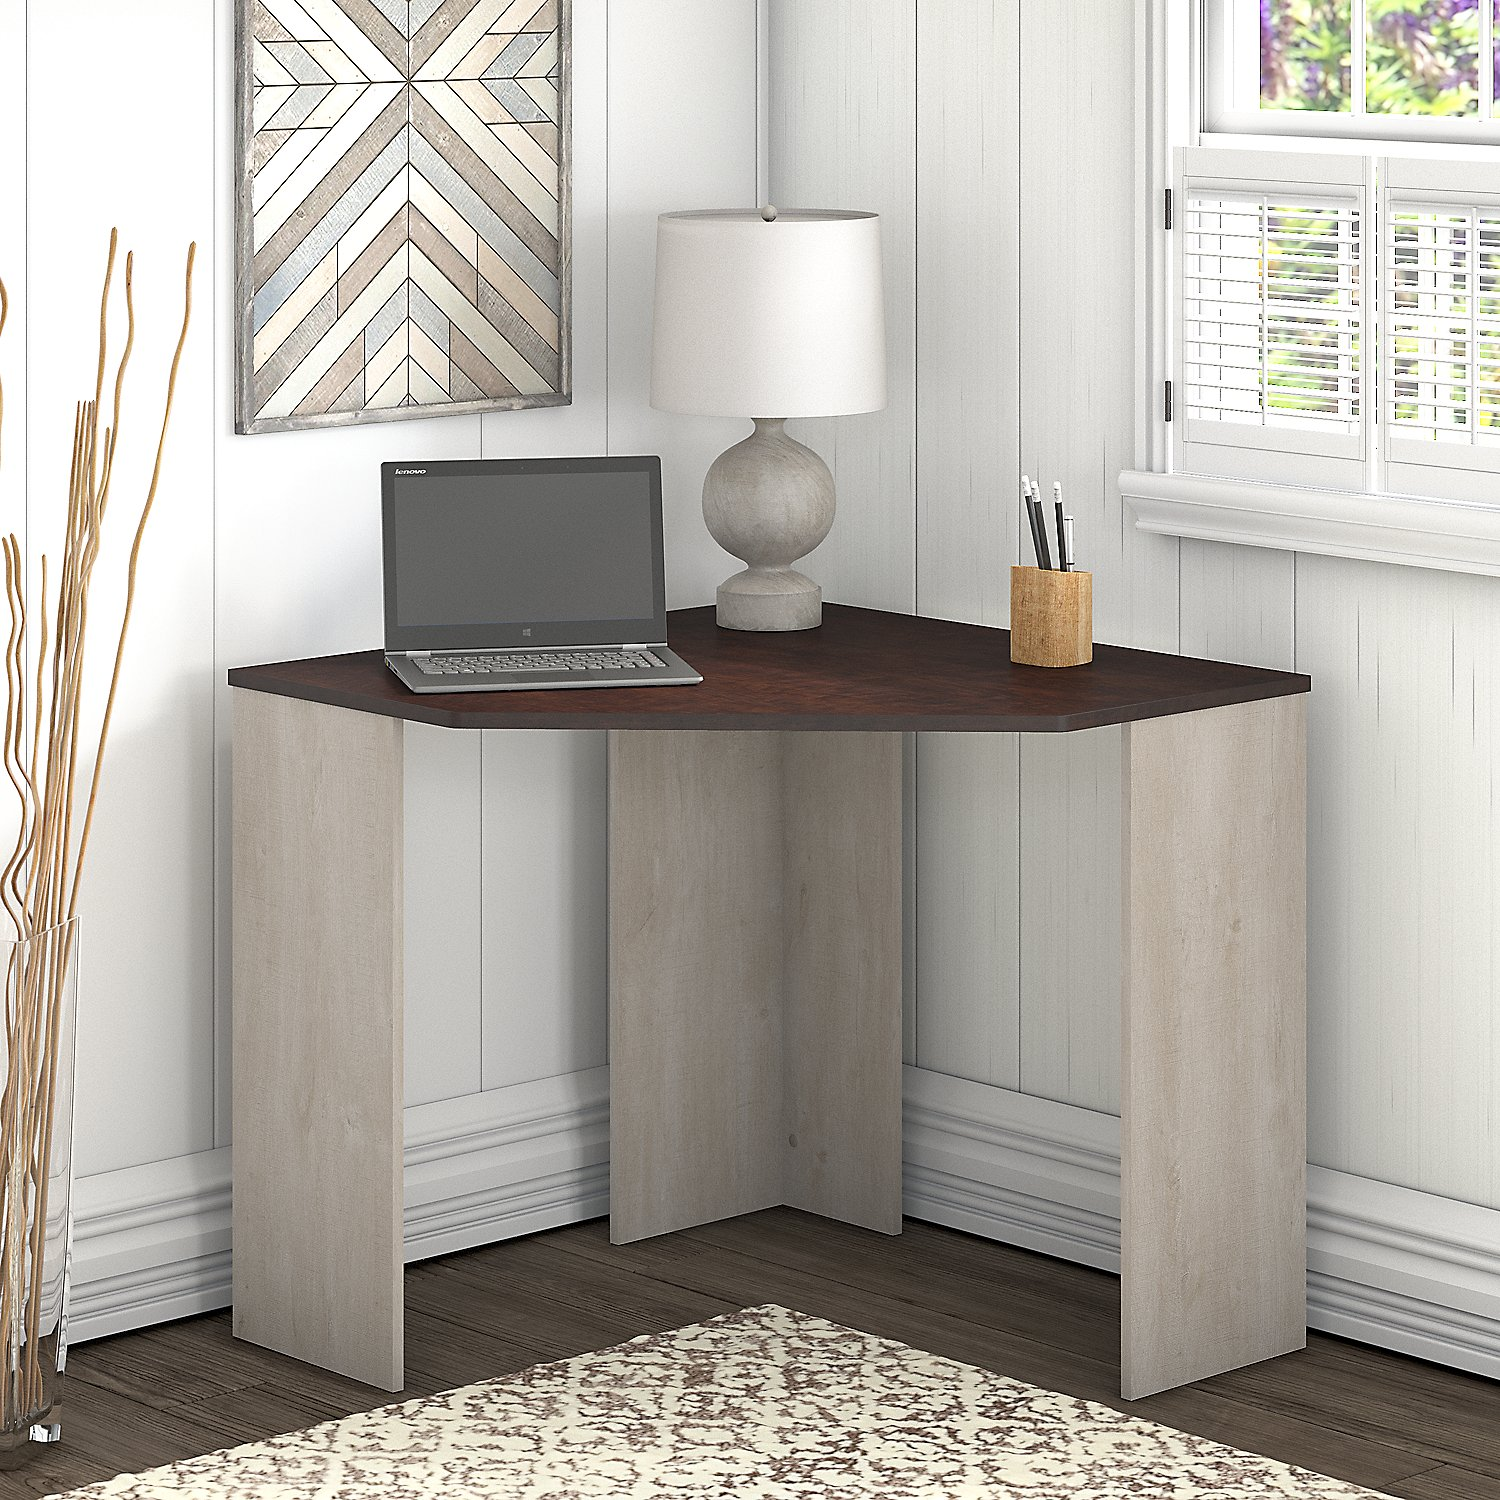 Beau Bush Furniture Townhill Corner Desk In Washed Gray And Madison Cherry